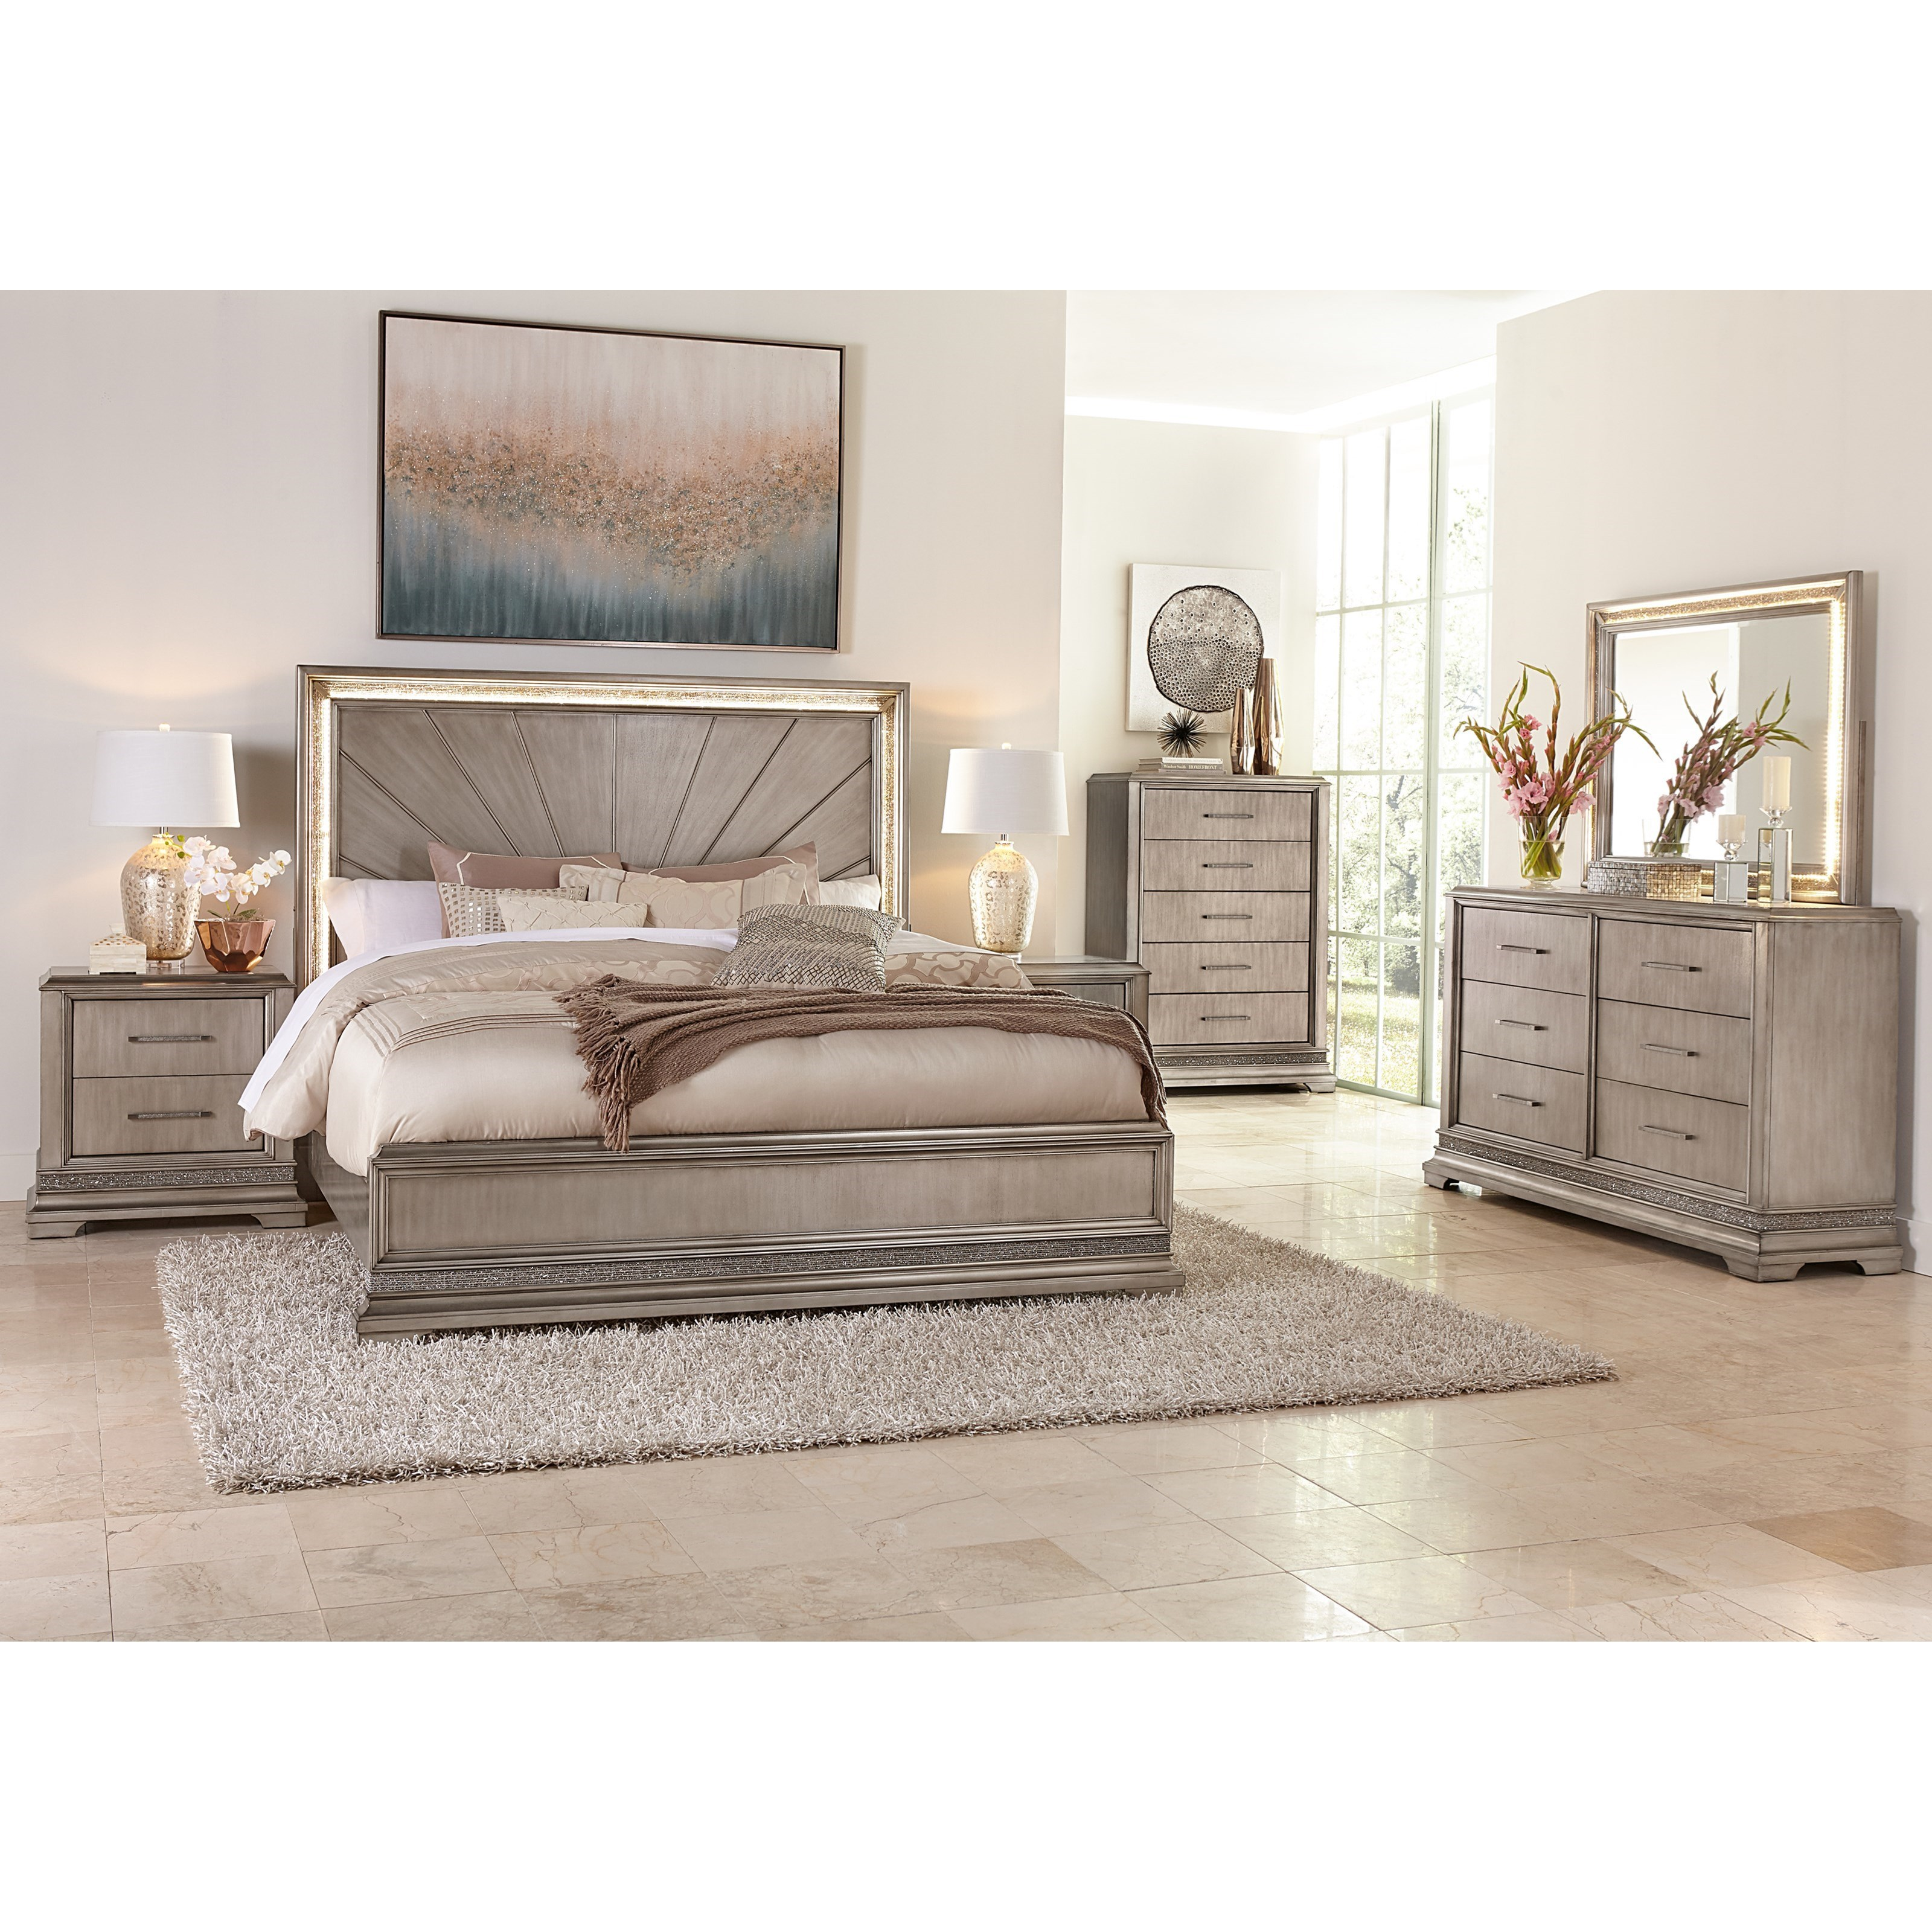 Sophia California King Bedroom Group by Klaussner International at Beck's Furniture